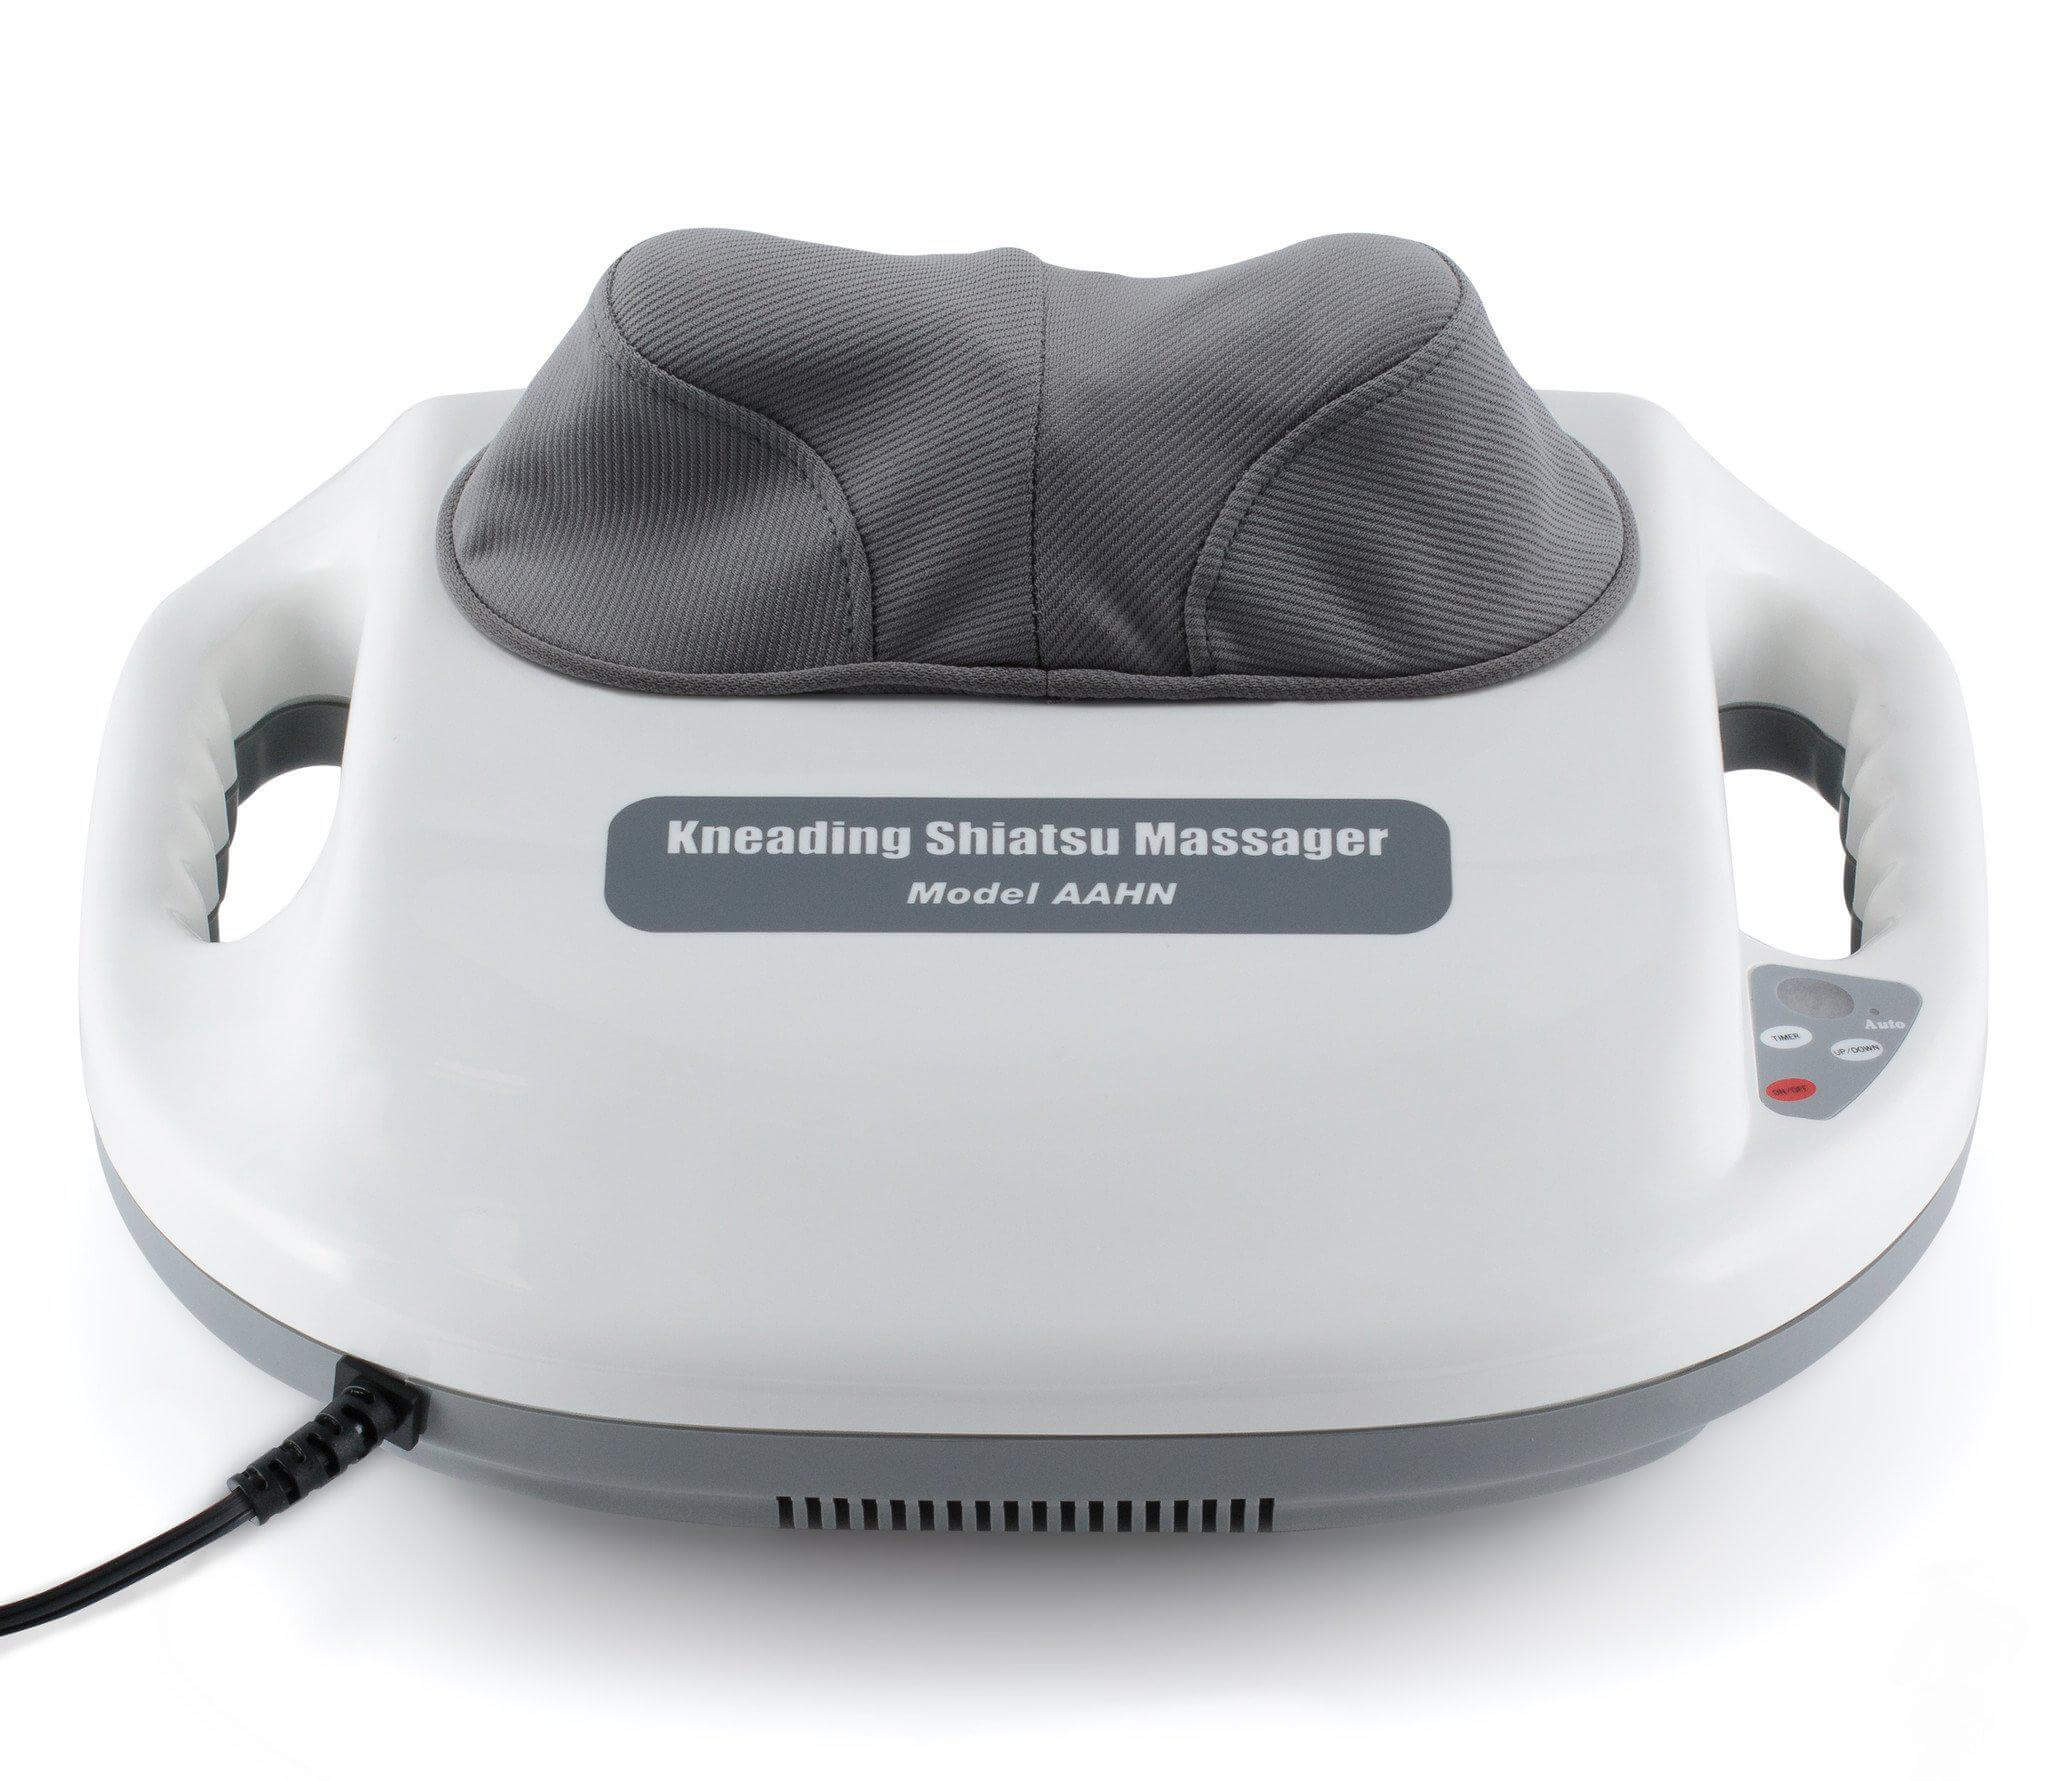 Certified Refurbished Model Kneading Shiatsu Massager